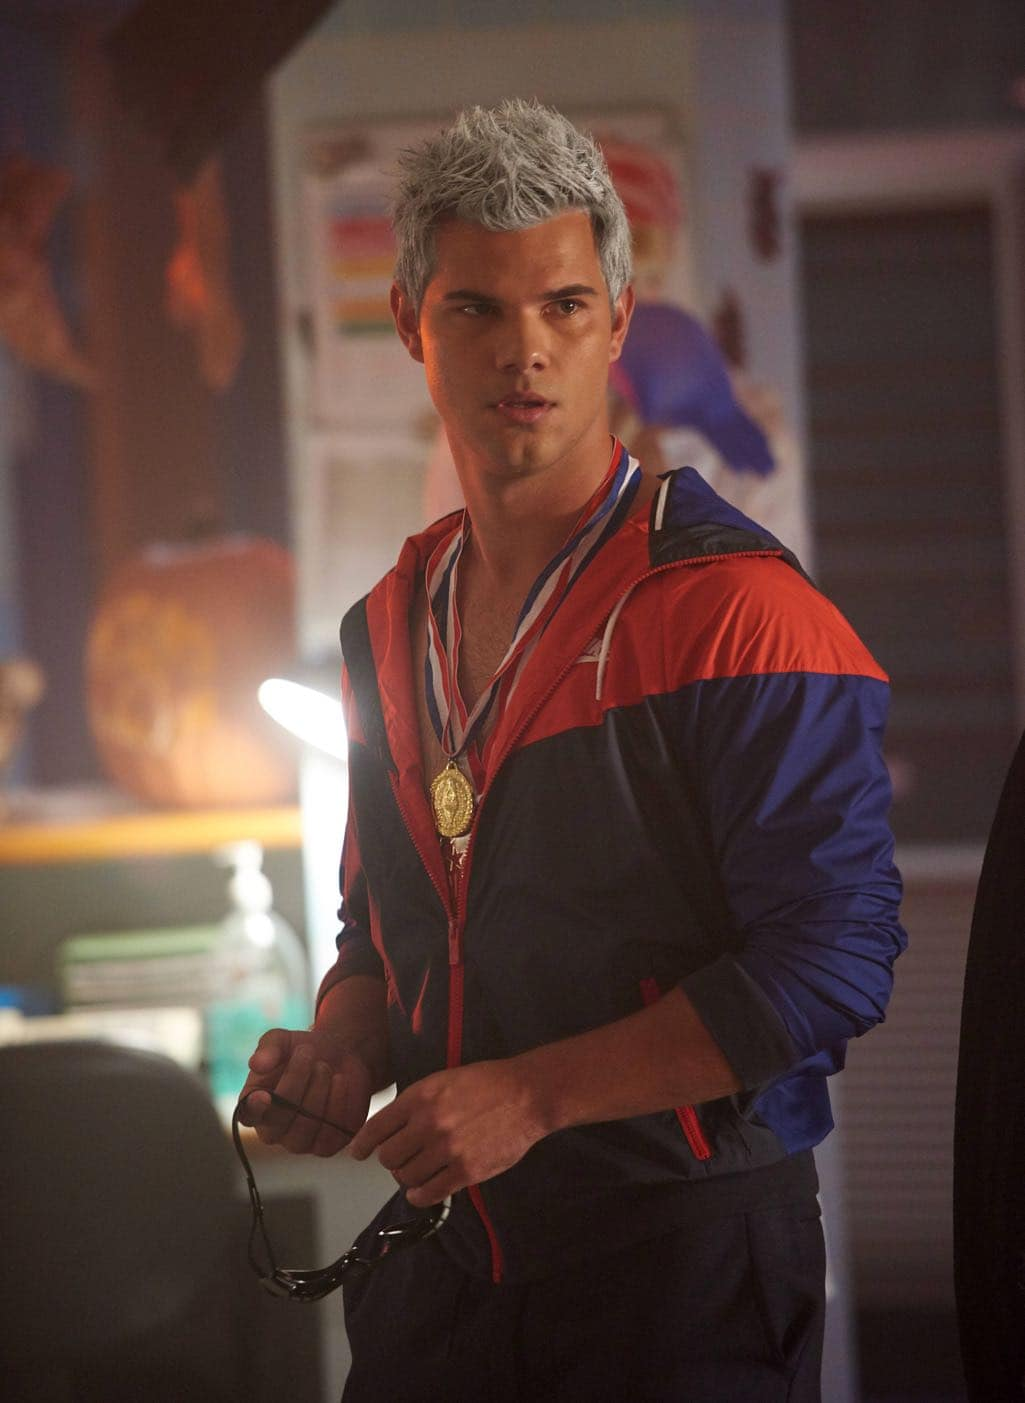 """SCREAM QUEENS: Taylor Lautner in the all-new """"Halloween Blues"""" episode of SCREAM QUEENS airing Tuesday, Oct. 18 (9:01-10:00 PM ET/PT) on FOX. Cr: Michael Becker / FOX. © 2016 FOX Broadcasting Co."""